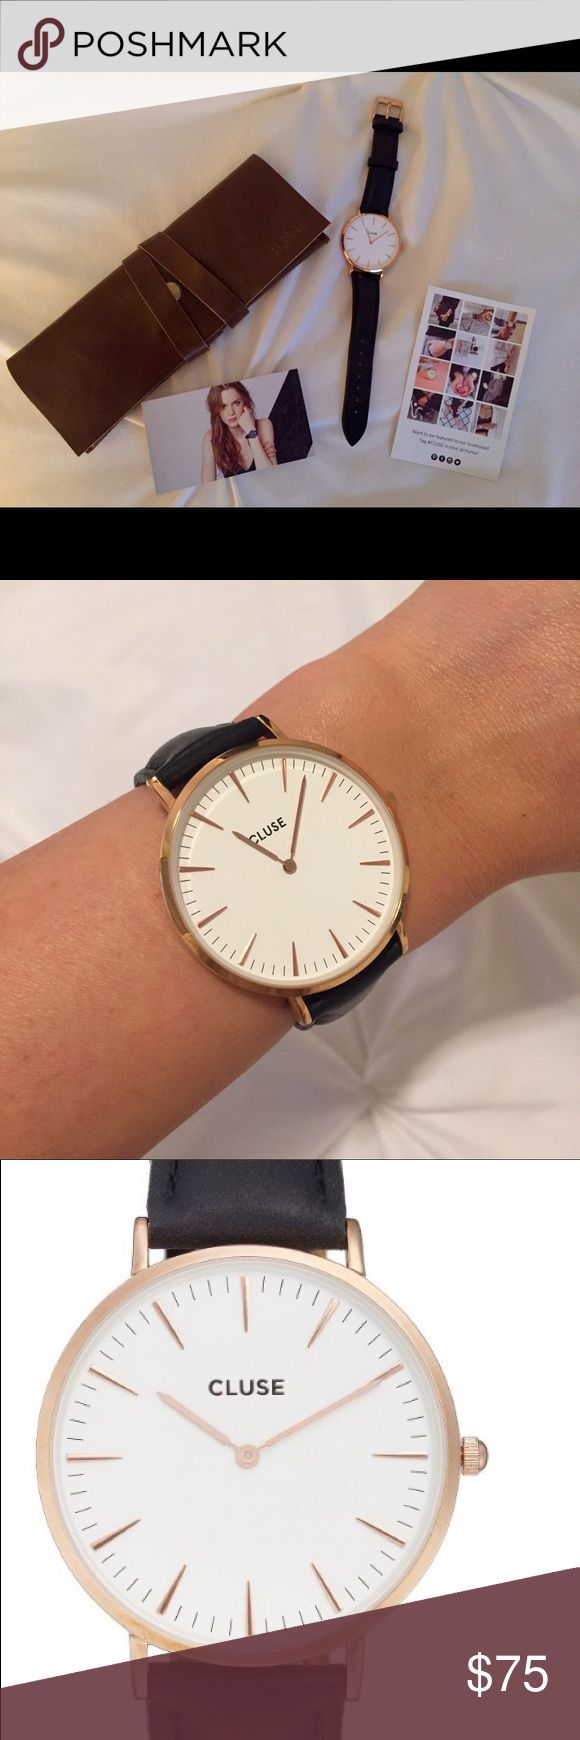 Cluse Watch Women's Cluse Watch. Black leather strap, gold and white face. Leather strap is in excellent condition and no marks on the face of the Watch. Comes with Cluse brown leather watch case. Cluse Accessories Watches